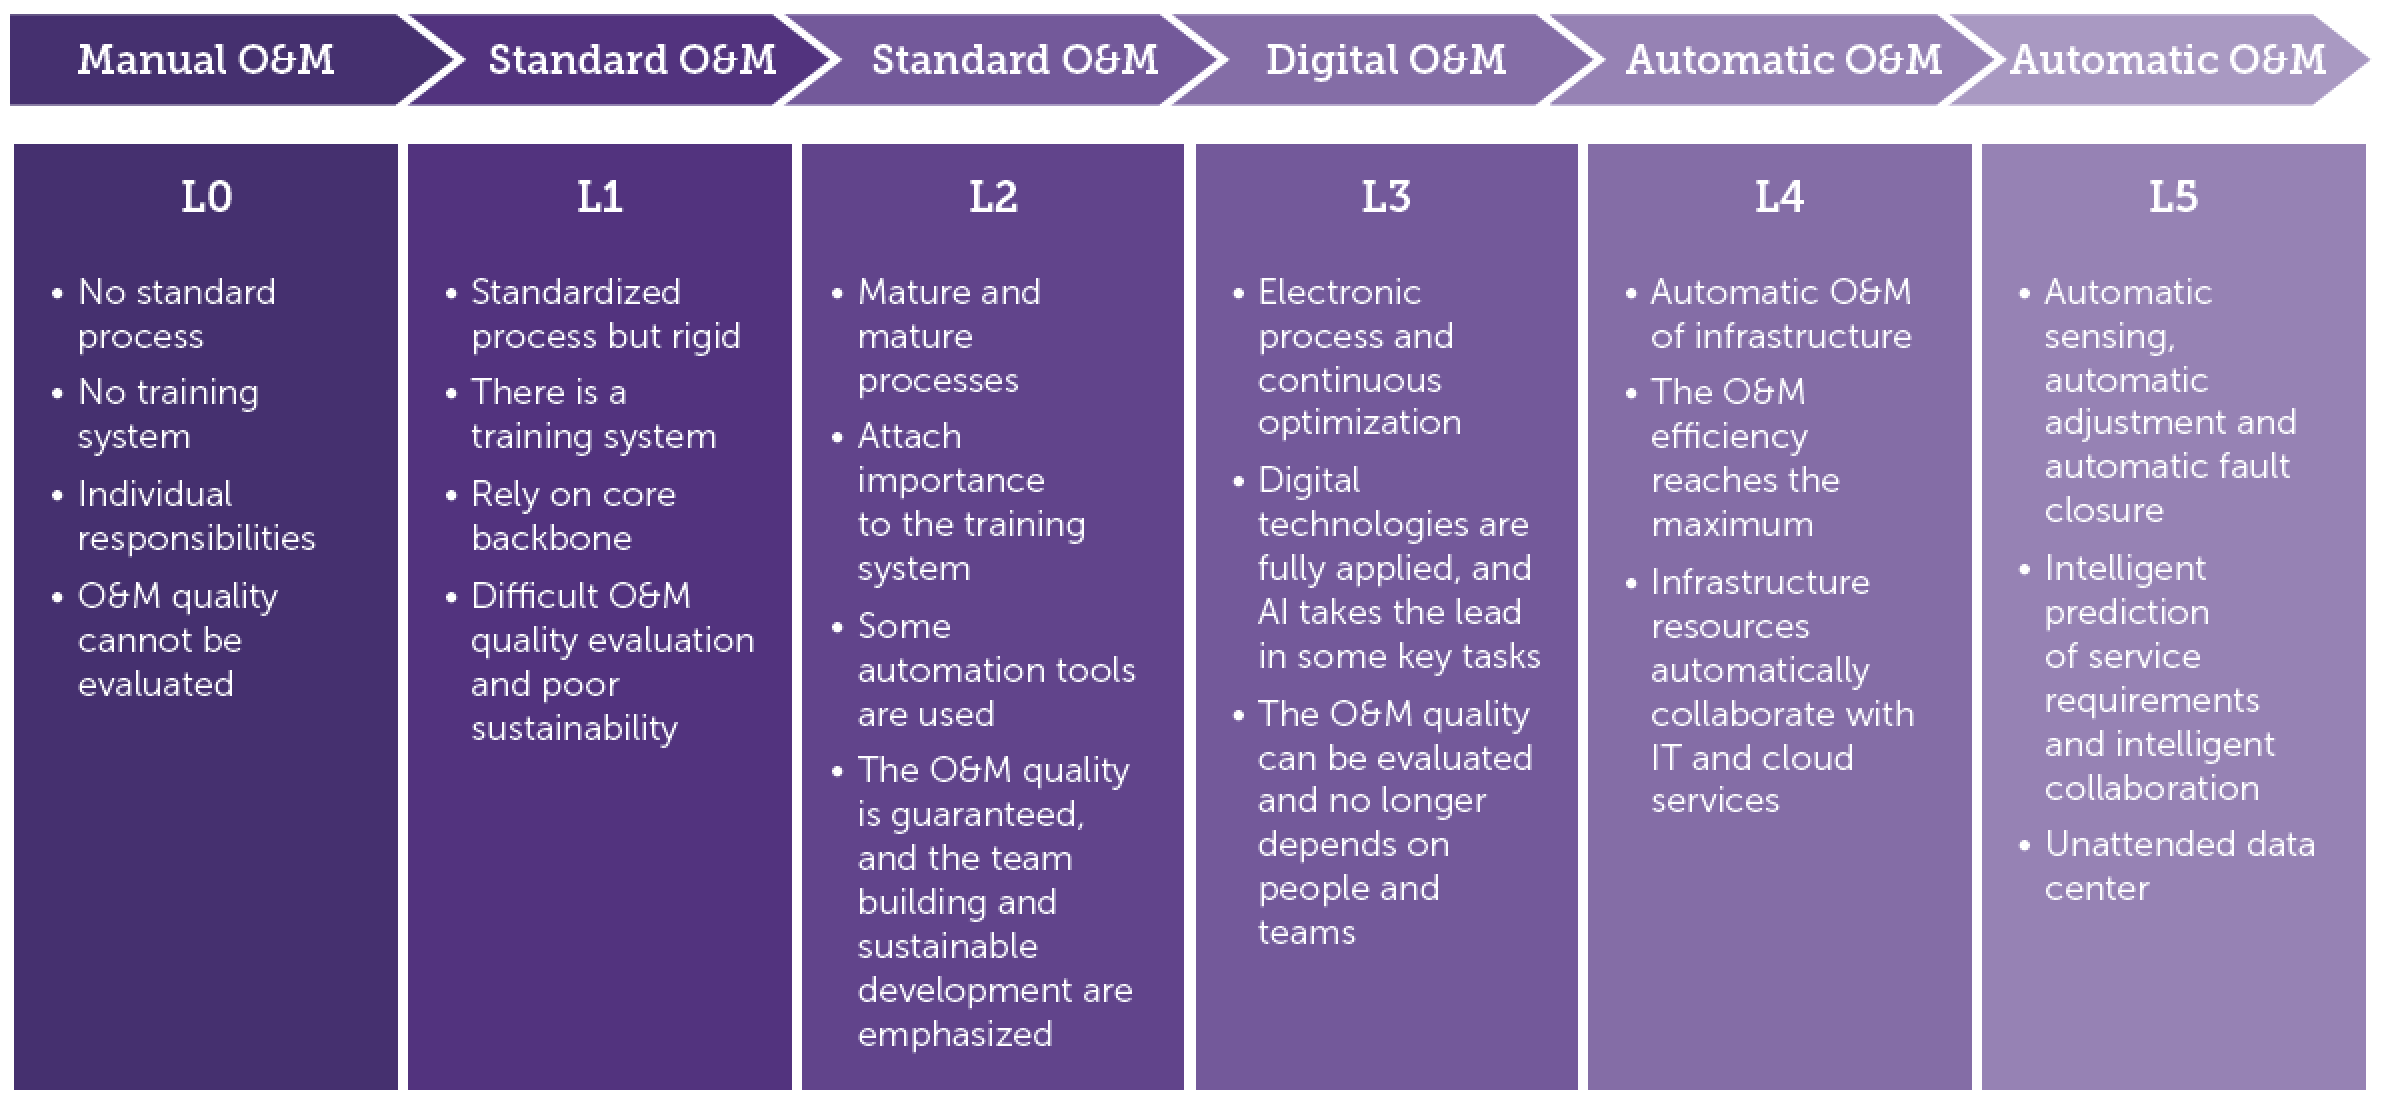 Figure 3 : The evolution of O&M. Source: Huawei